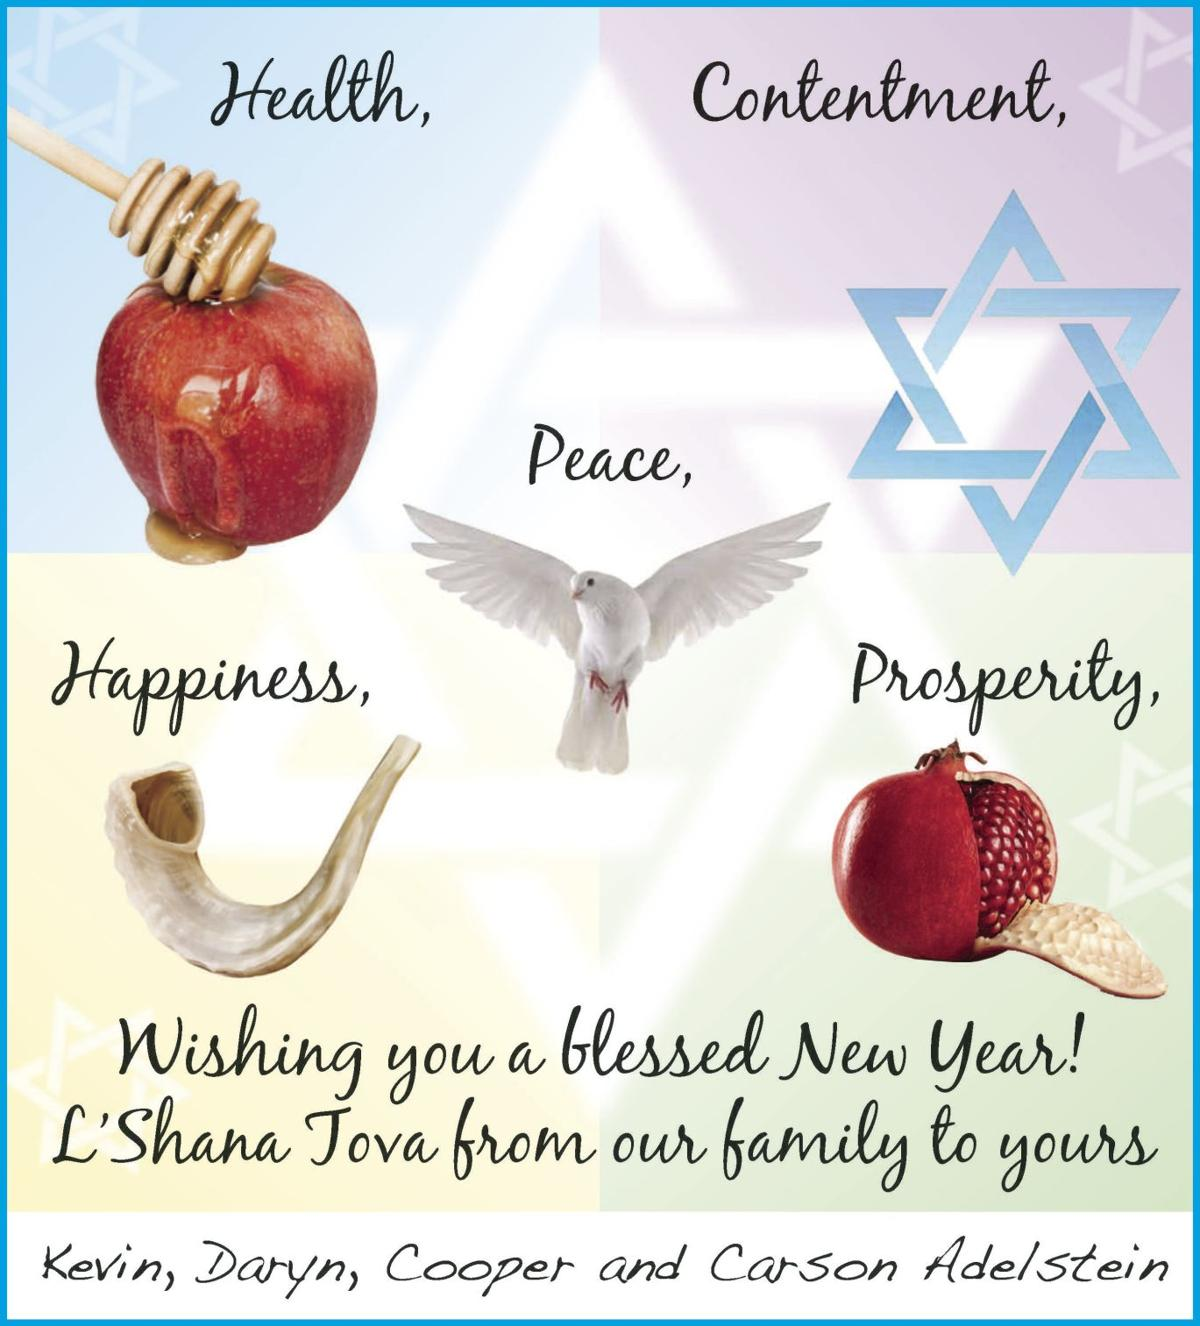 an introduction to the origins of rosh hashanah a jewish holiday A guide to rosh hashanah, yom kippur and the days in between the culmination of the high holiday period occurs during the ten days of repentance, which begin on 1 tishrei with rosh hashanah and end with yom kippur during this period, human beings have the chance to tip the scales of divine .